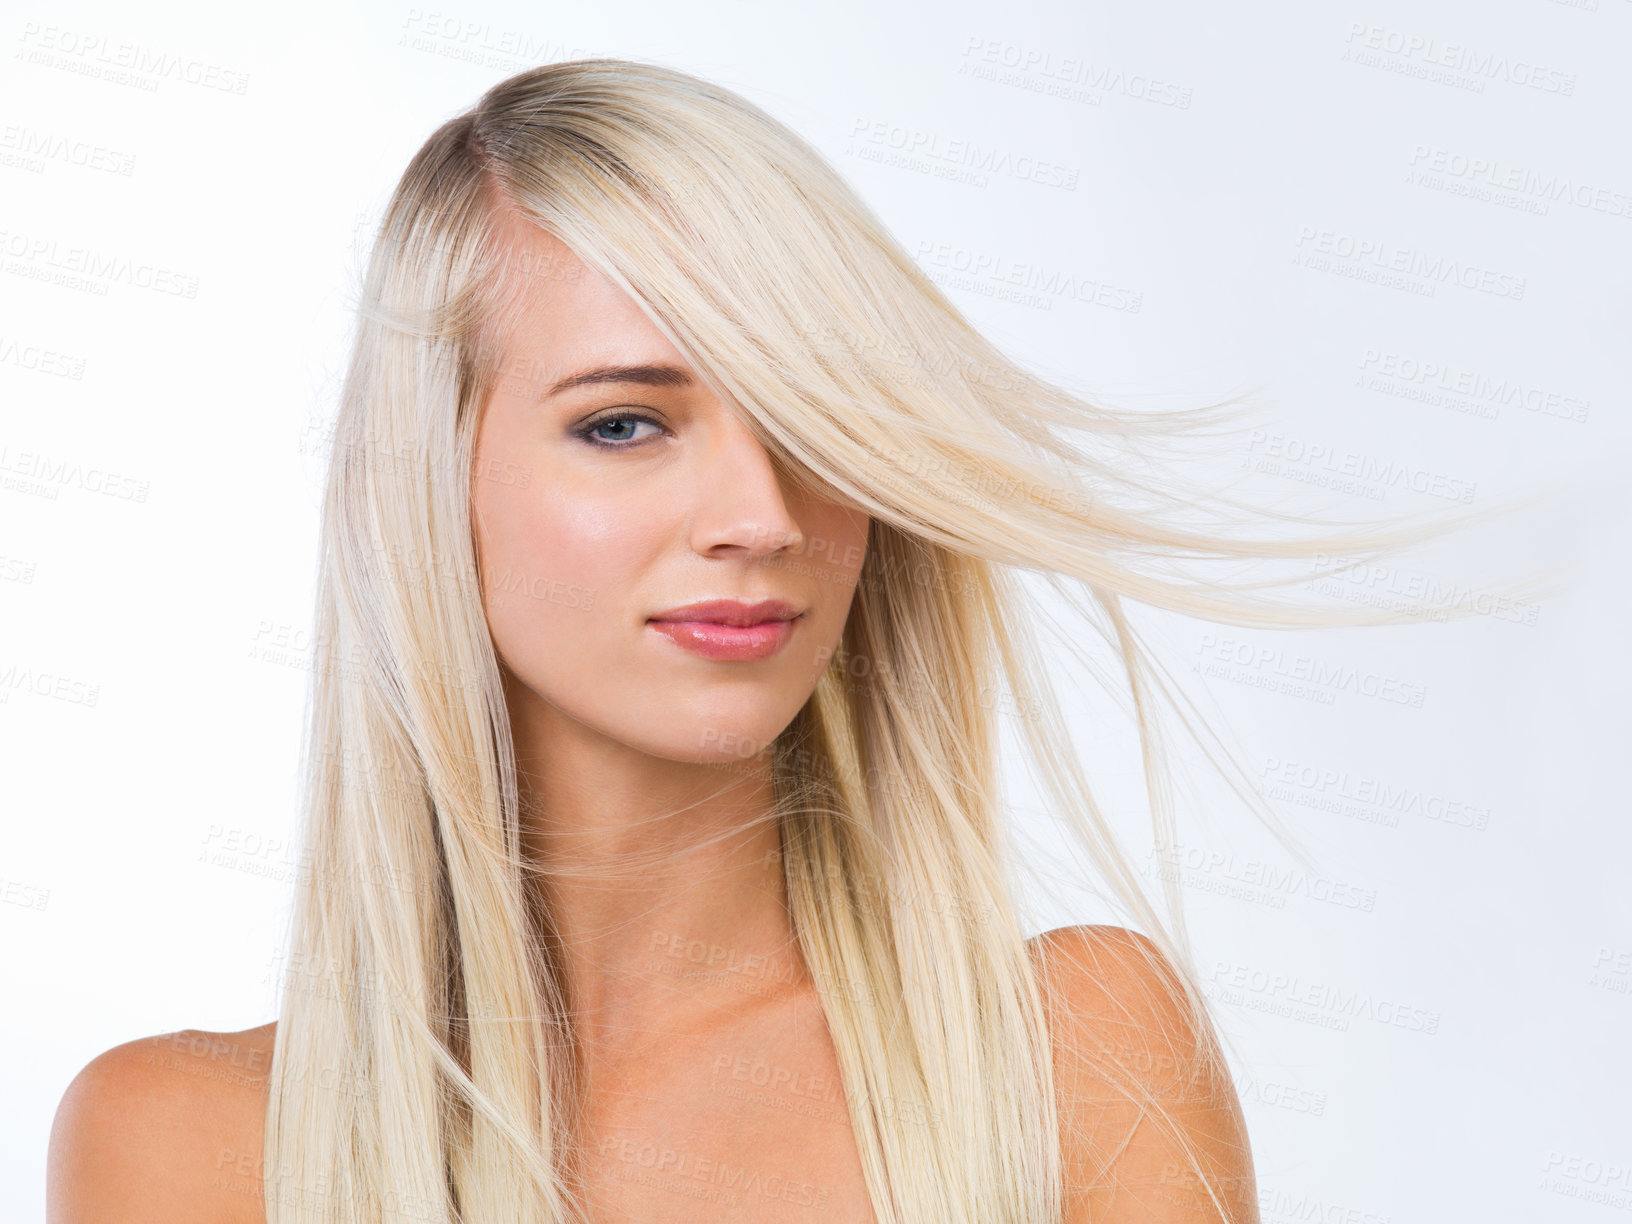 Buy stock photo Studio portrait of a gorgeous young blonde woman against a white background